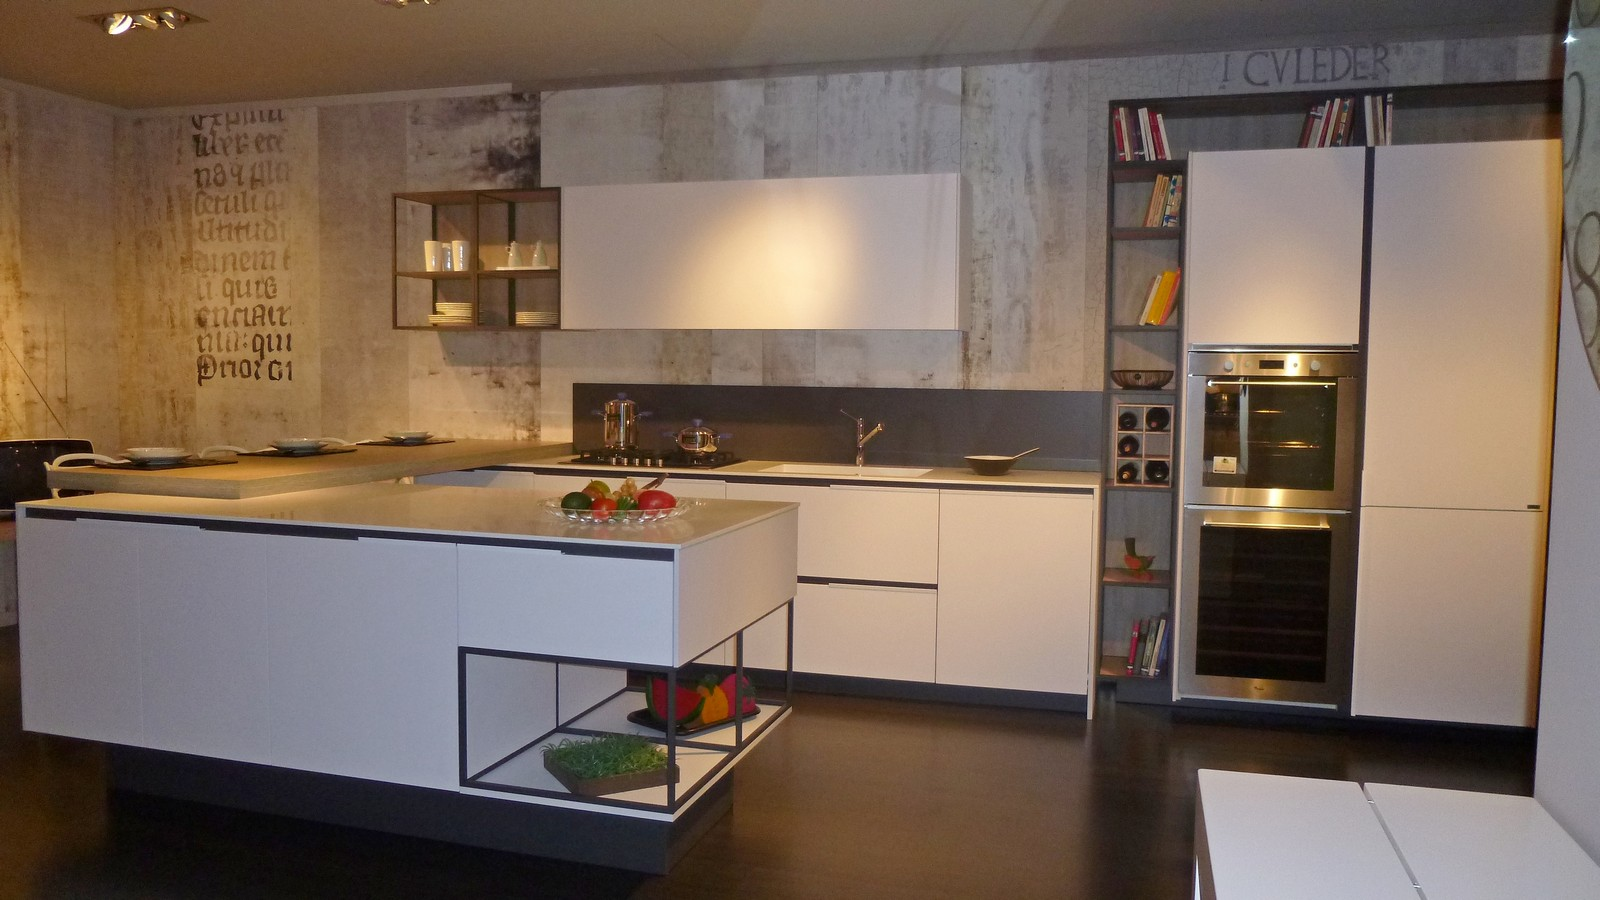 Cucine outlet lombardia beautiful cucina ola with cucine outlet